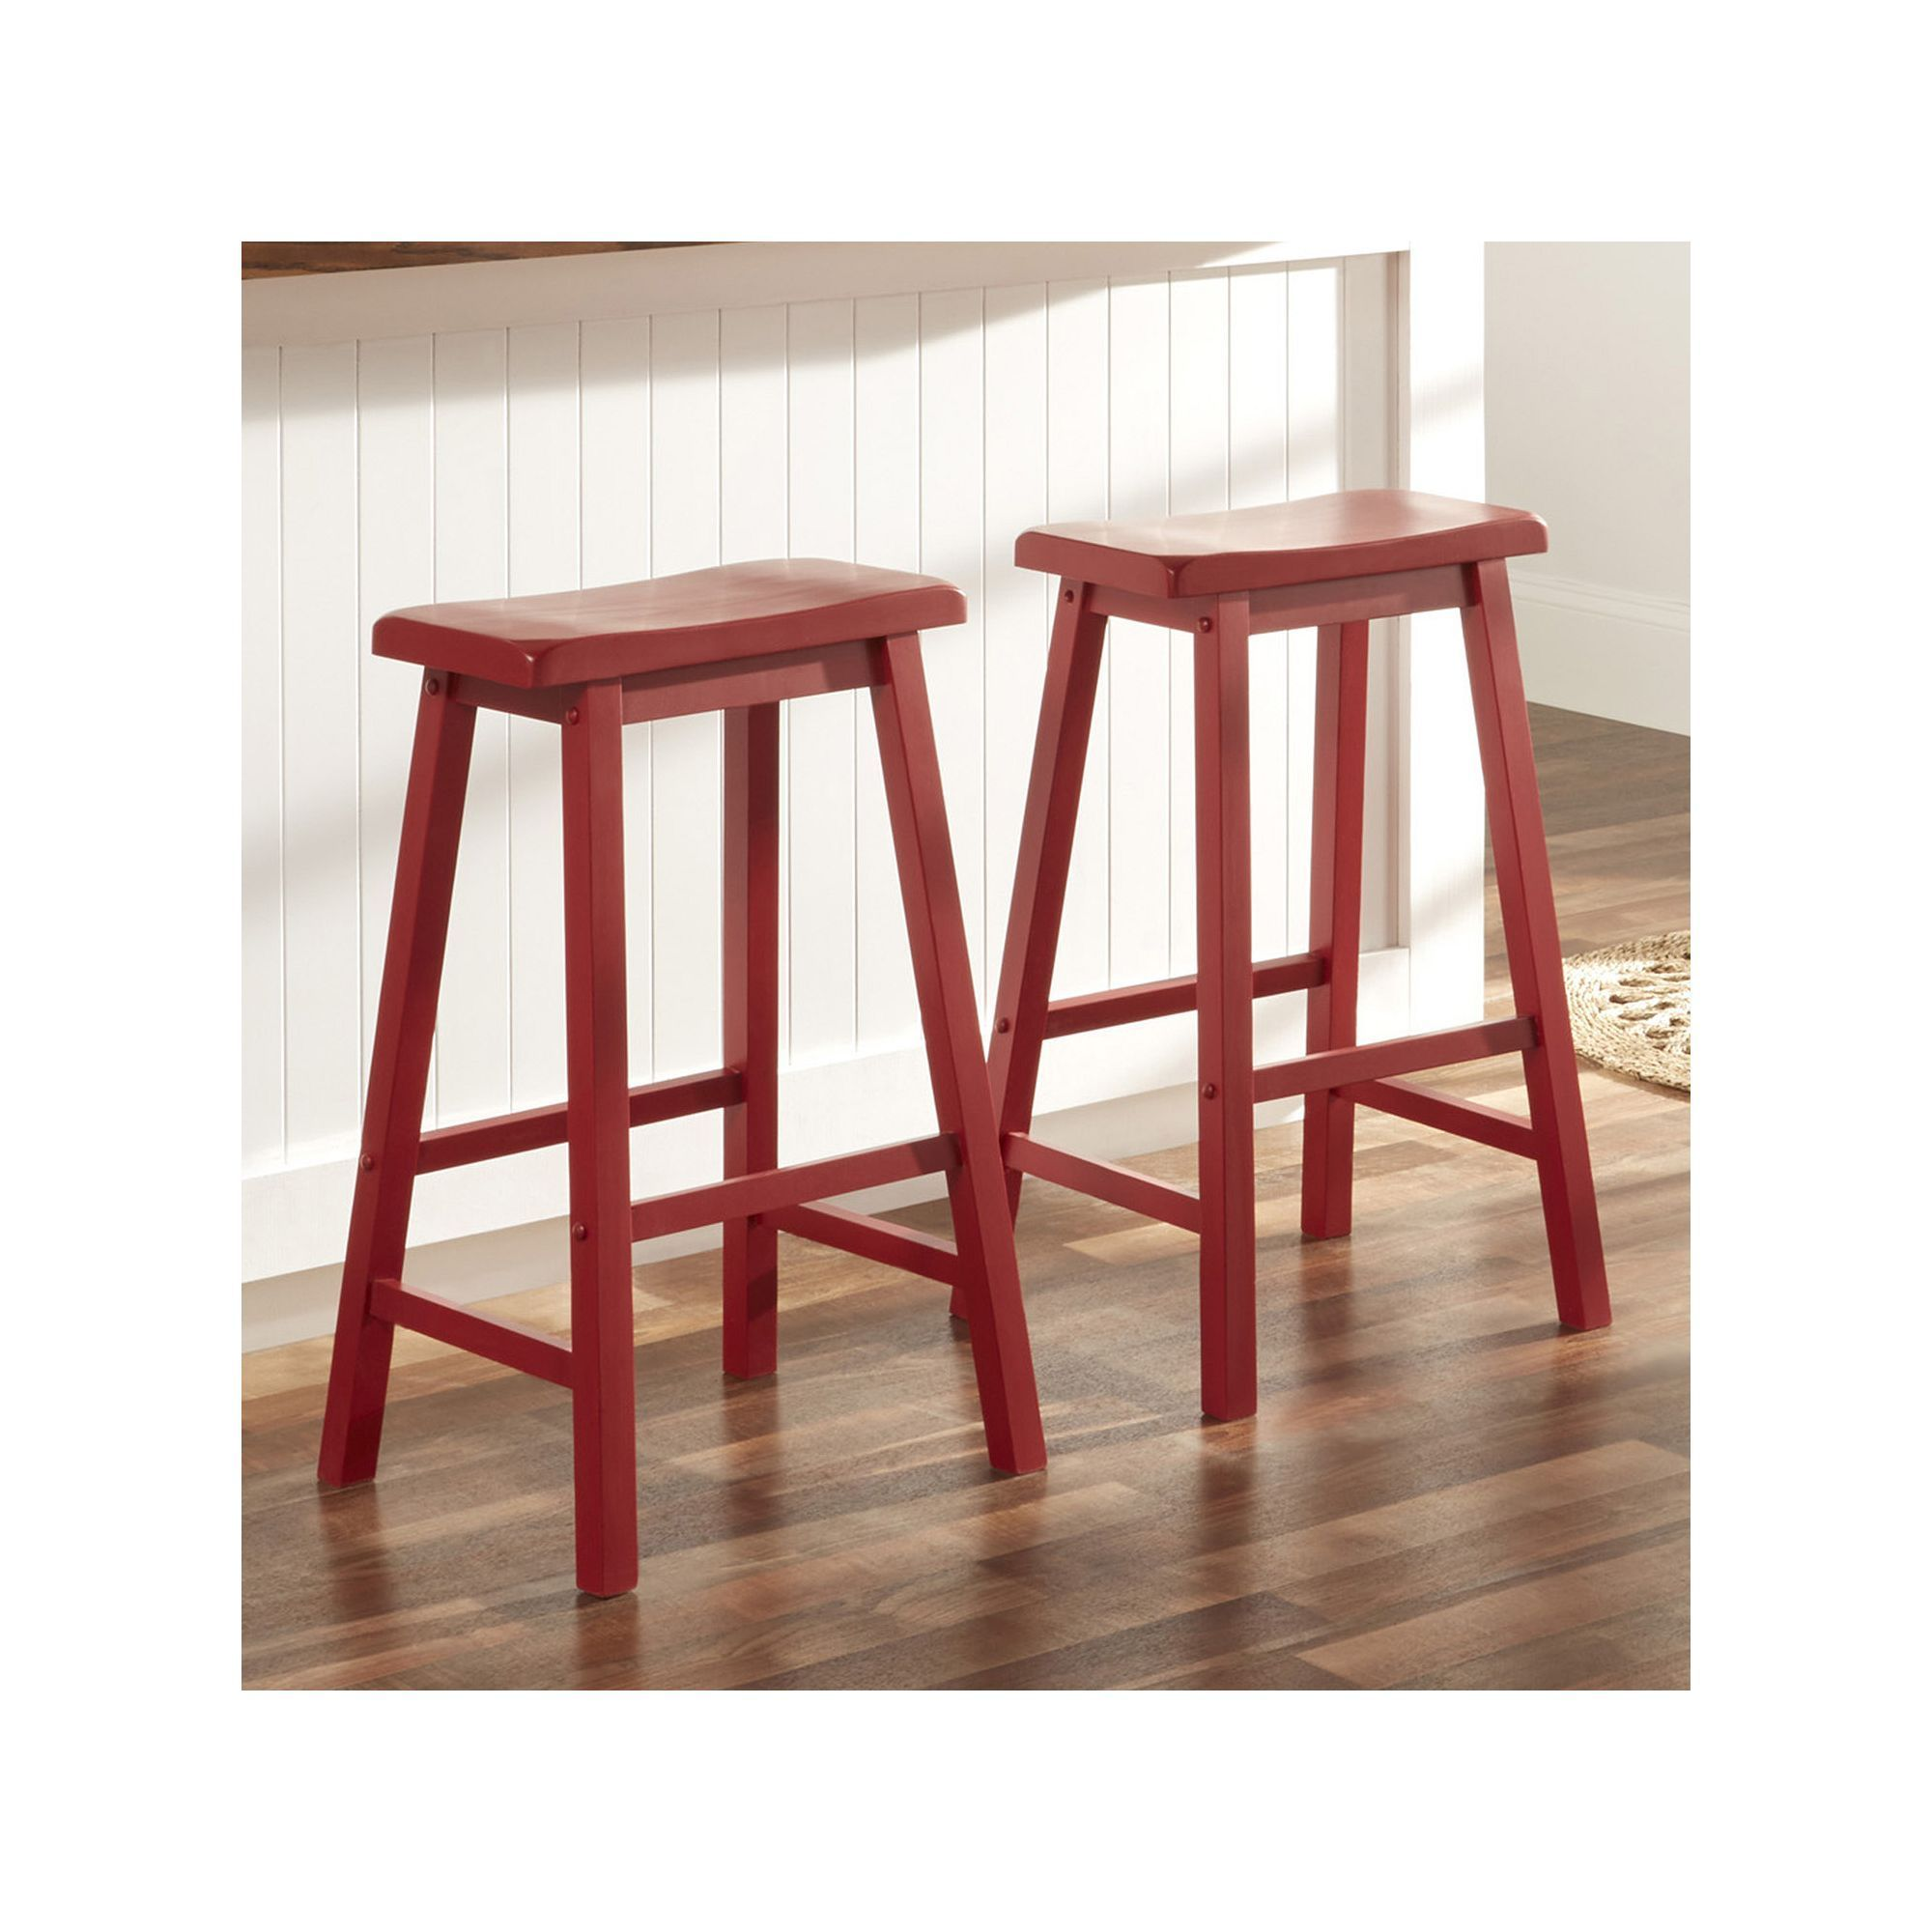 HomeVance 2-piece Reagan Saddle Bar Stool Set, Red | Products ...